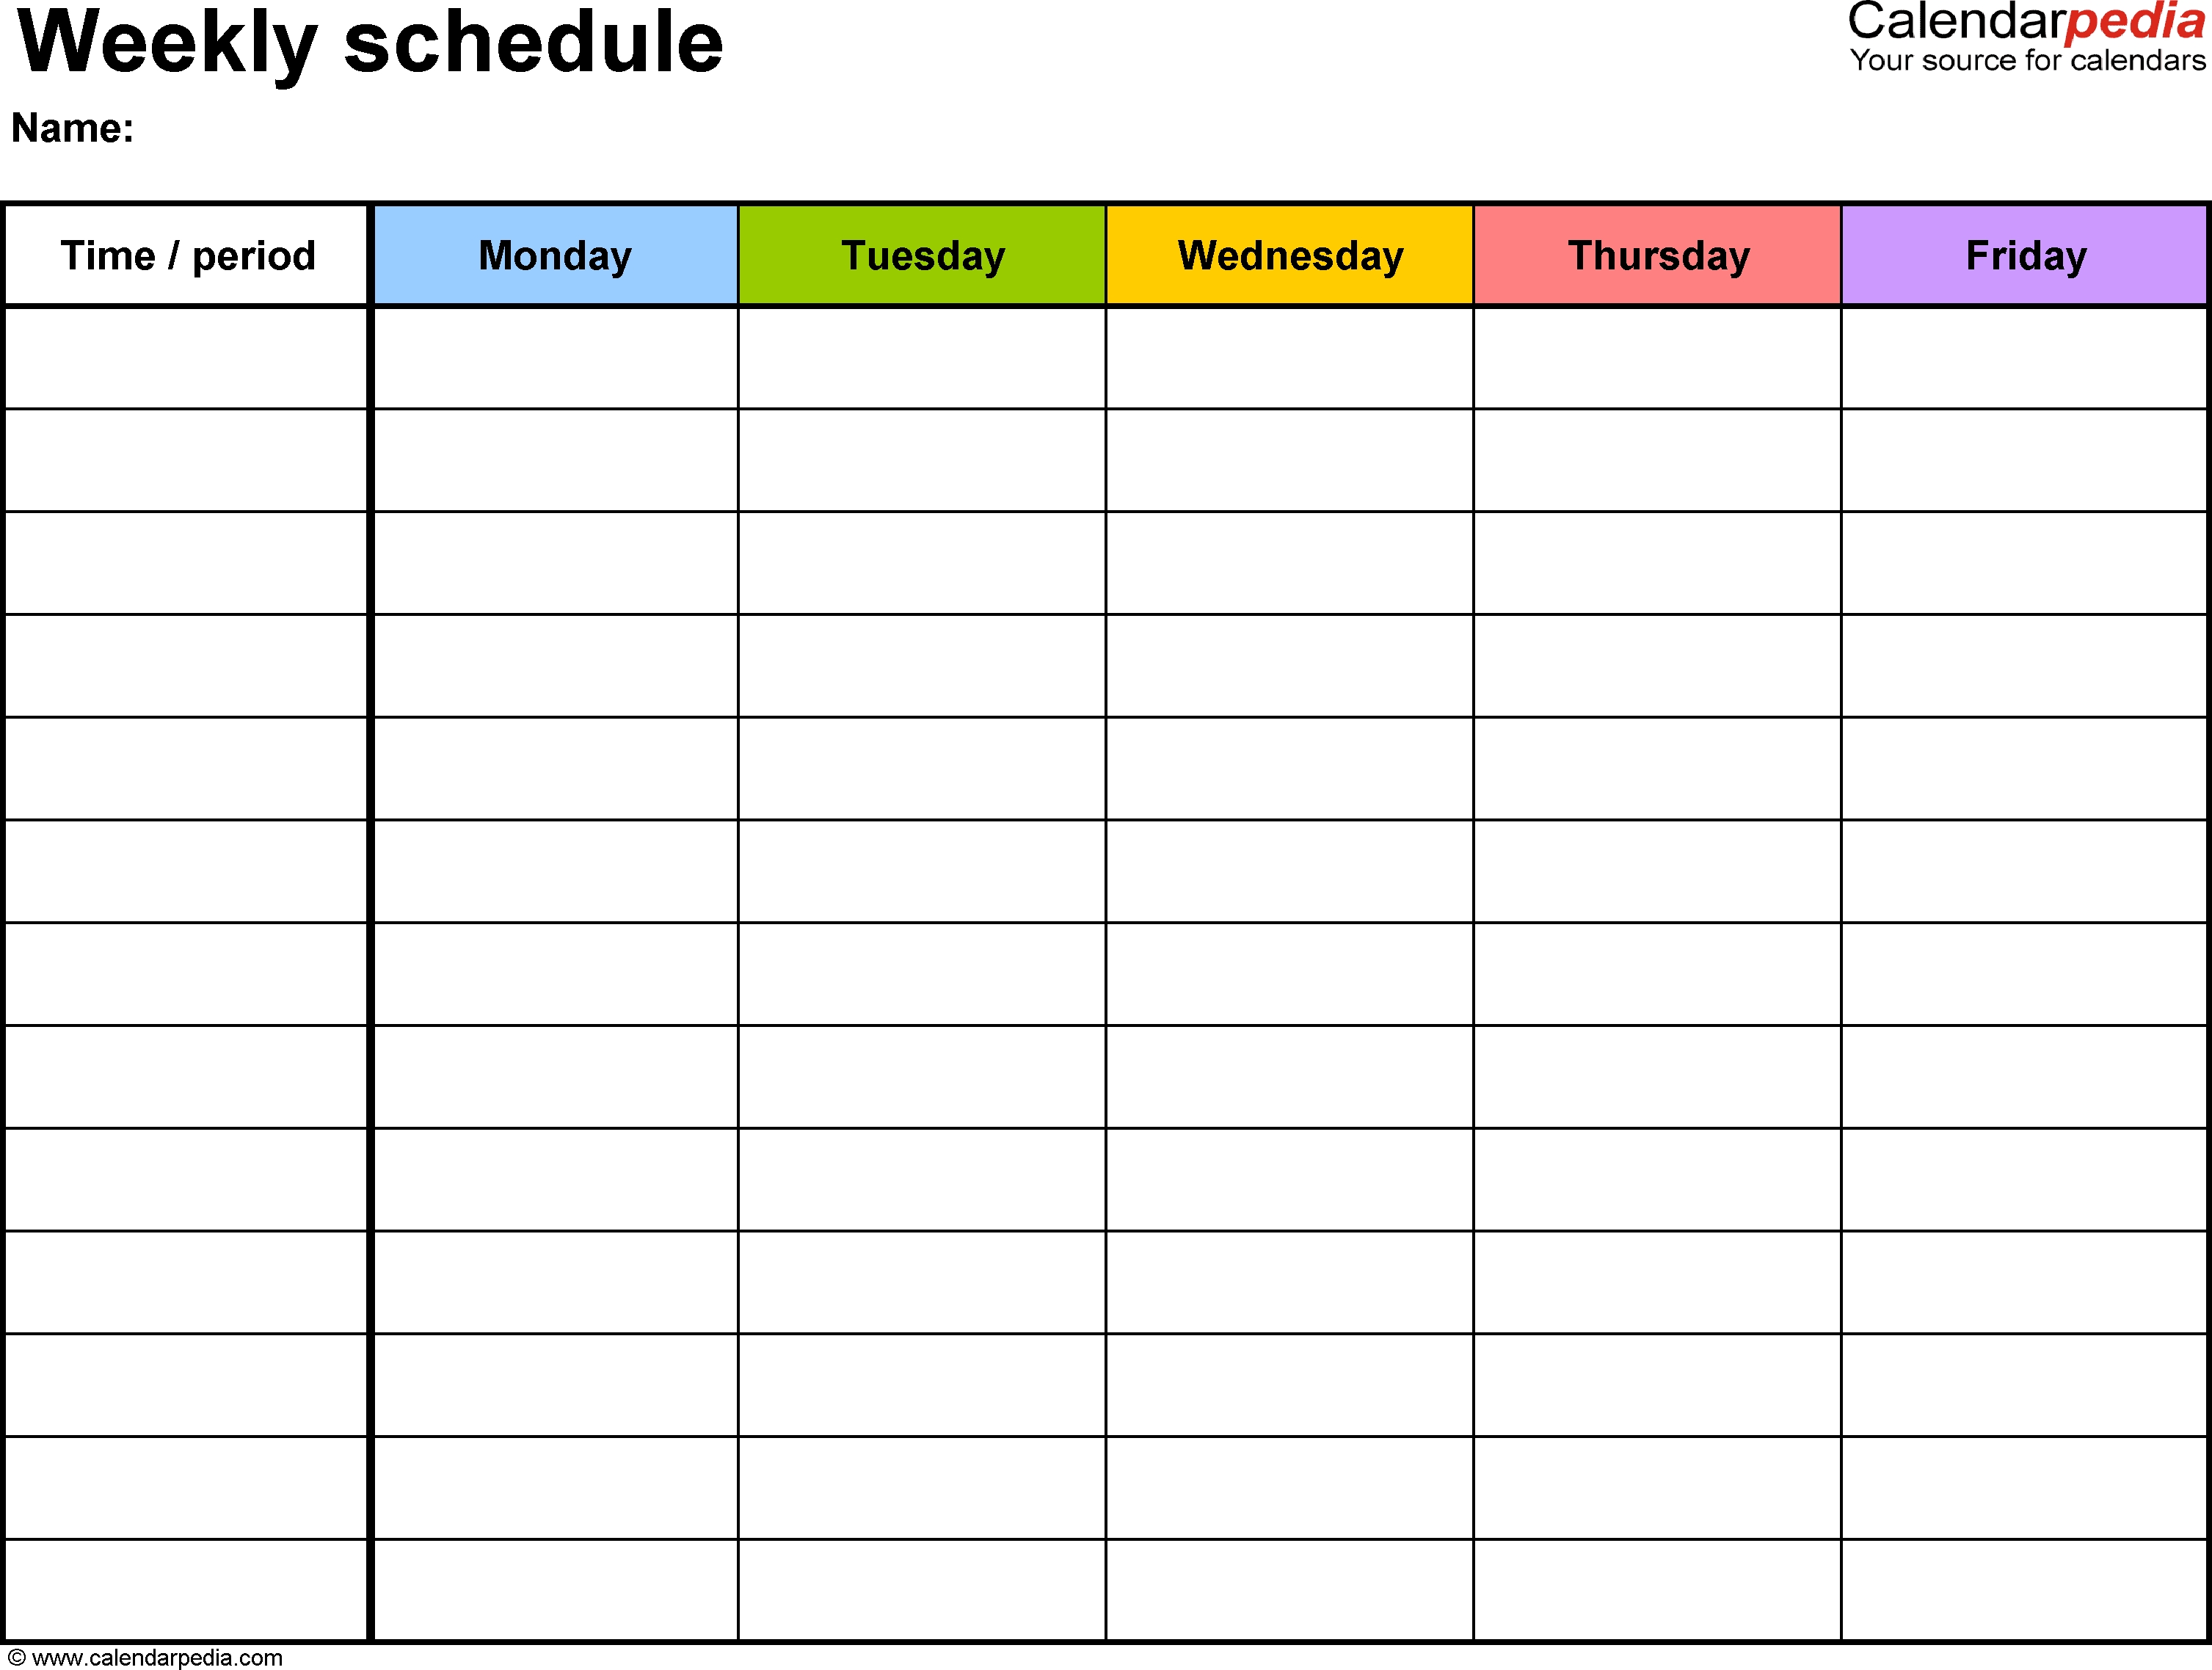 Free Weekly Schedule Templates For Word - 18 Templates  Printable Weekly Planner For The Week